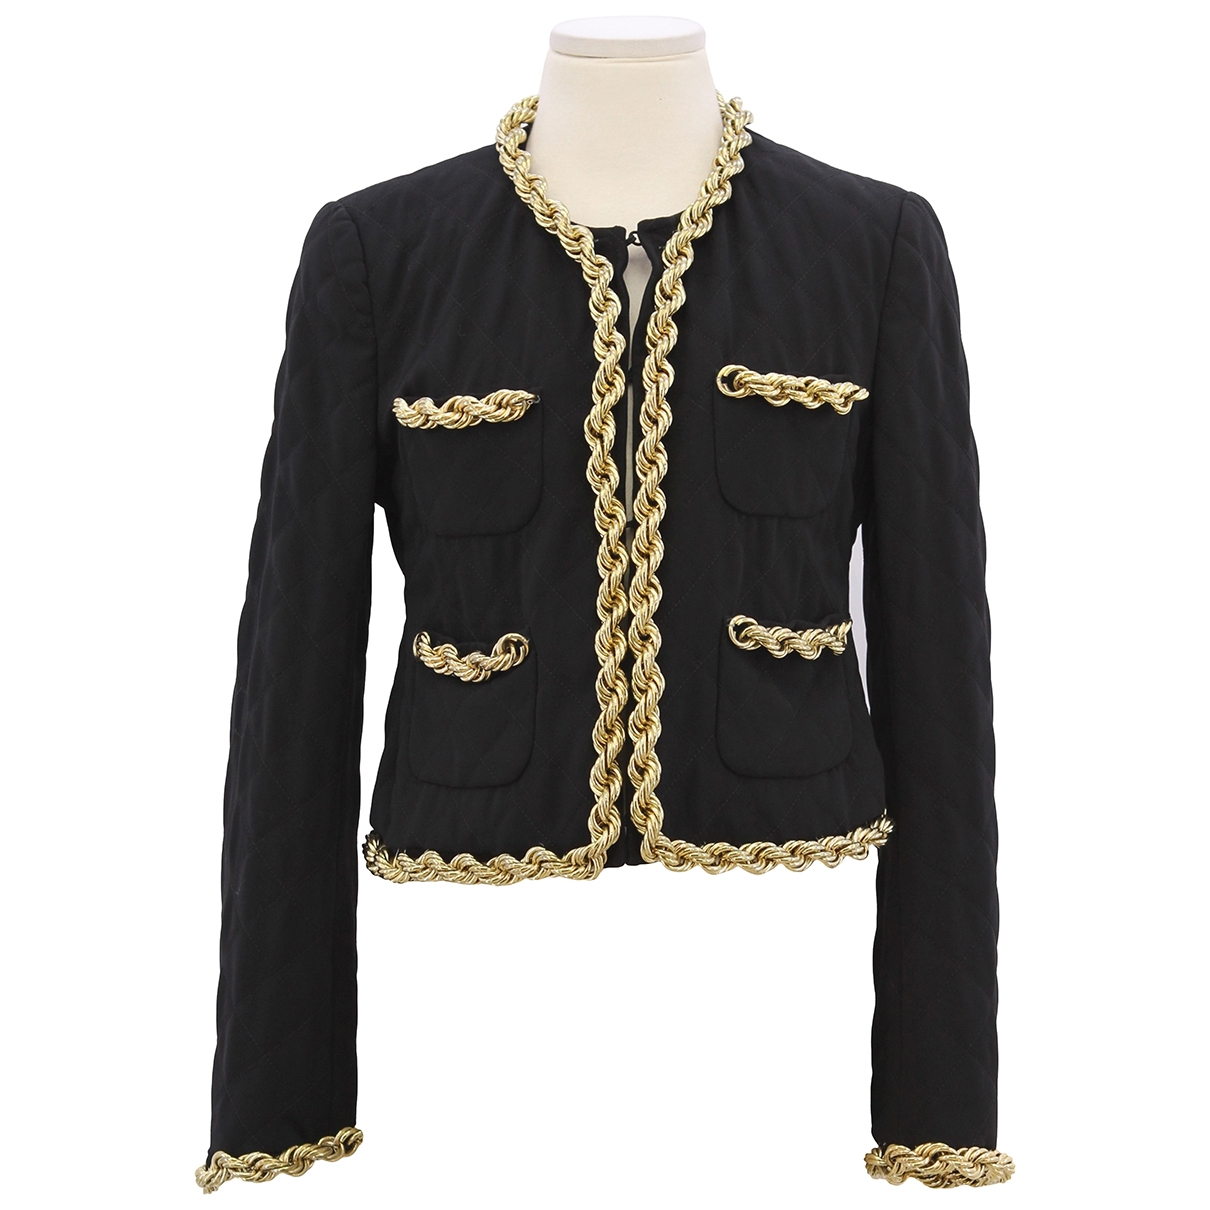 Moschino \N Black jacket for Women 38 IT